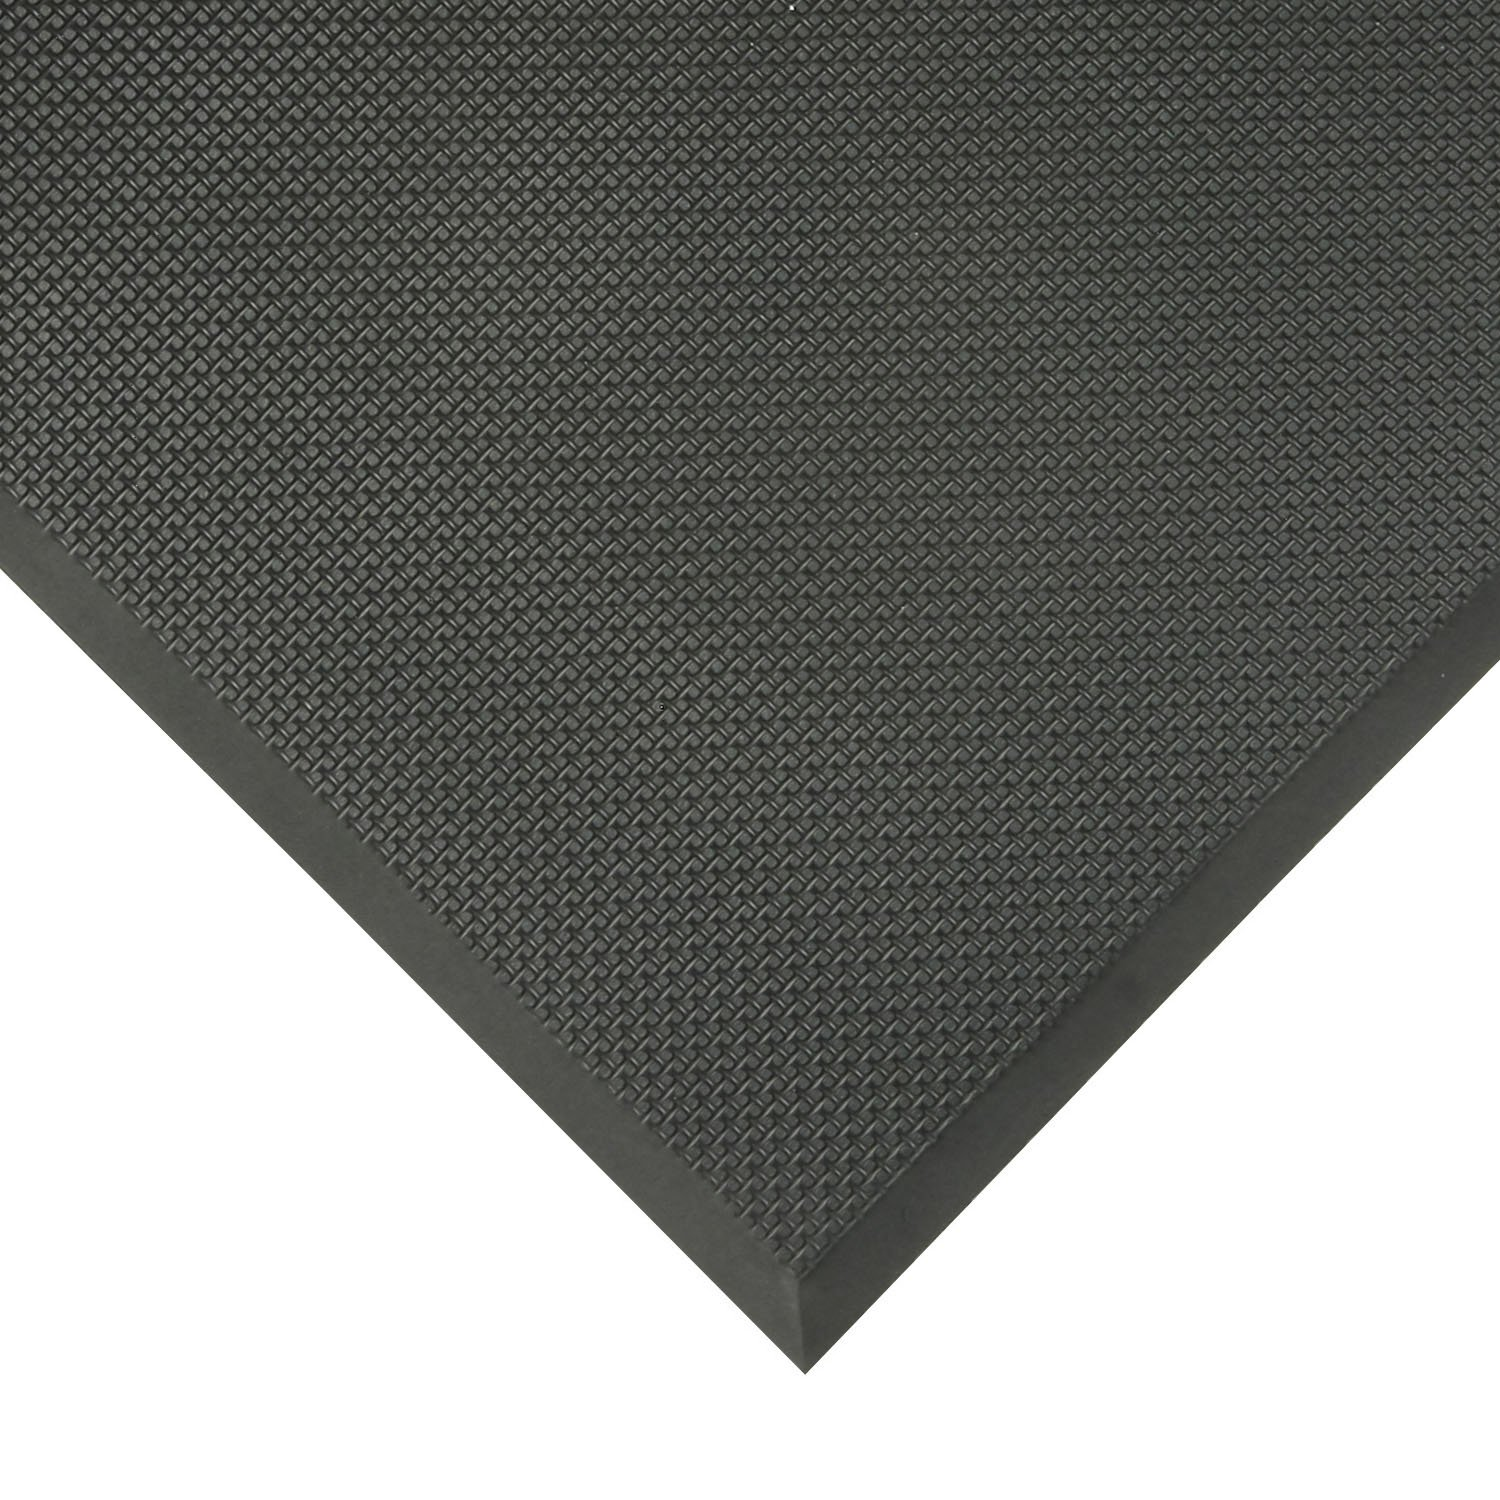 NoTrax T17 Superfoam Safety/Anti-Fatigue Floor Mat, for Dry Areas, 3' Width x 5' Length x 5/8'' Thickness, Black by NoTrax (Image #3)